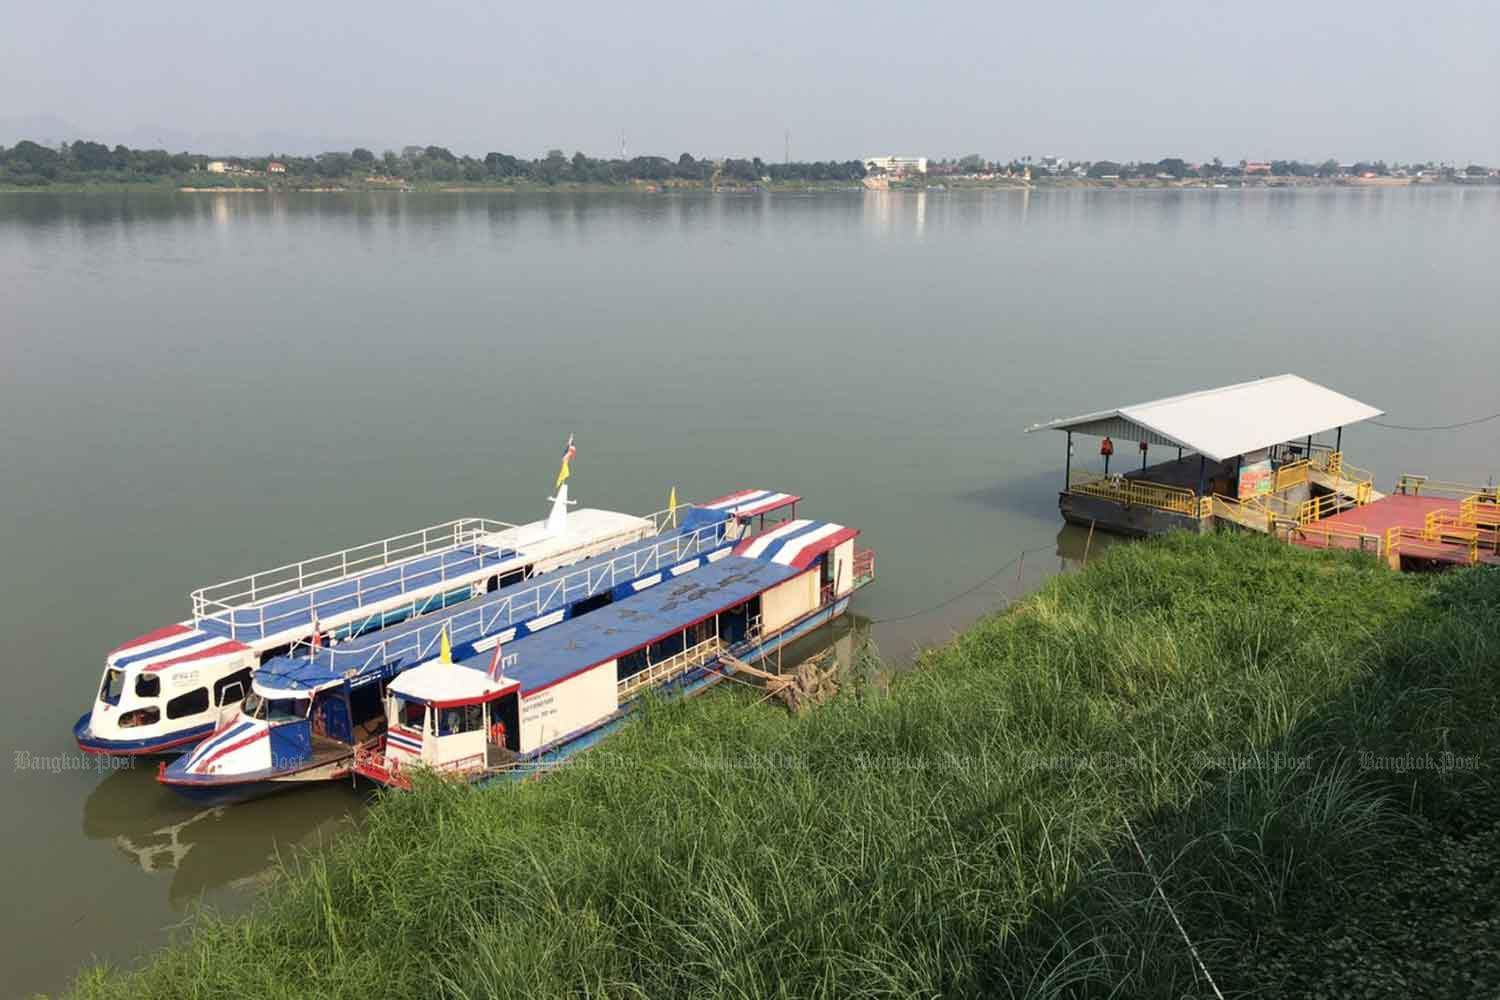 Passenger boats moor at a pier in Nakhon Phanom's Muang district. Boat services across the Mekong river between Thailand and Laos in Nakhon Phanom have come to a halt after the border was closed.